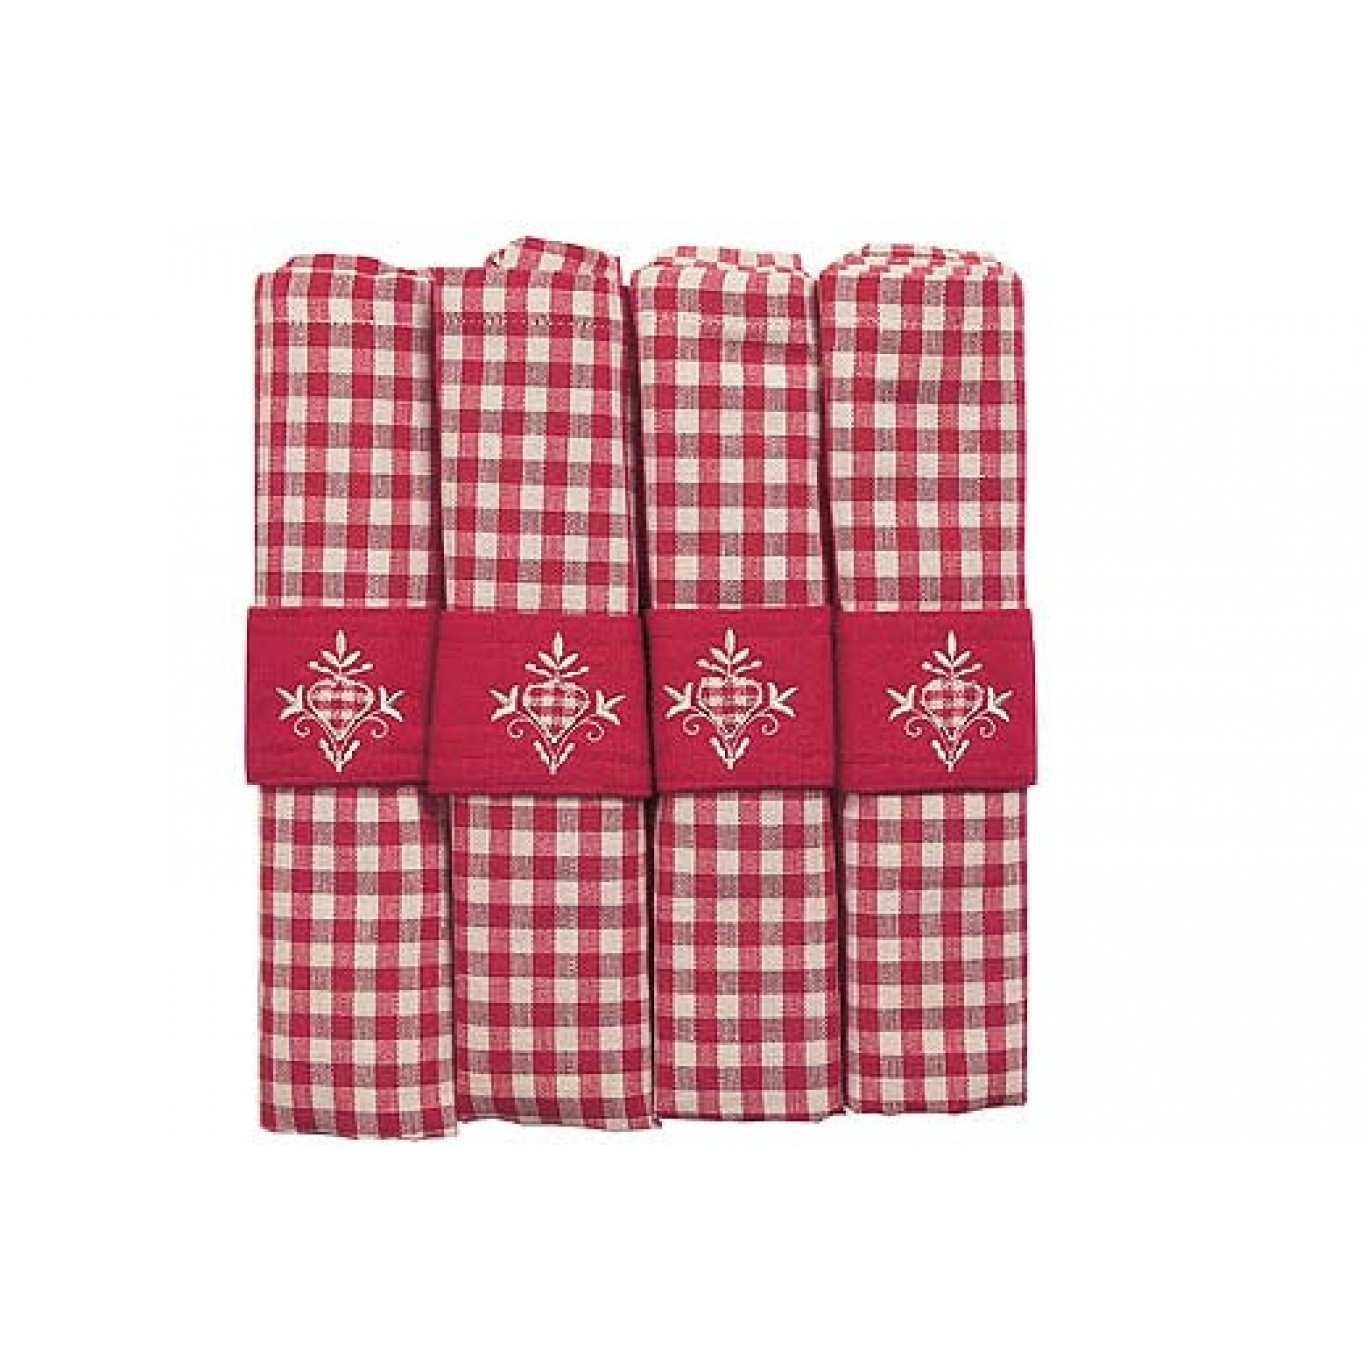 Image of Auberge Red Check Napkins set of 4